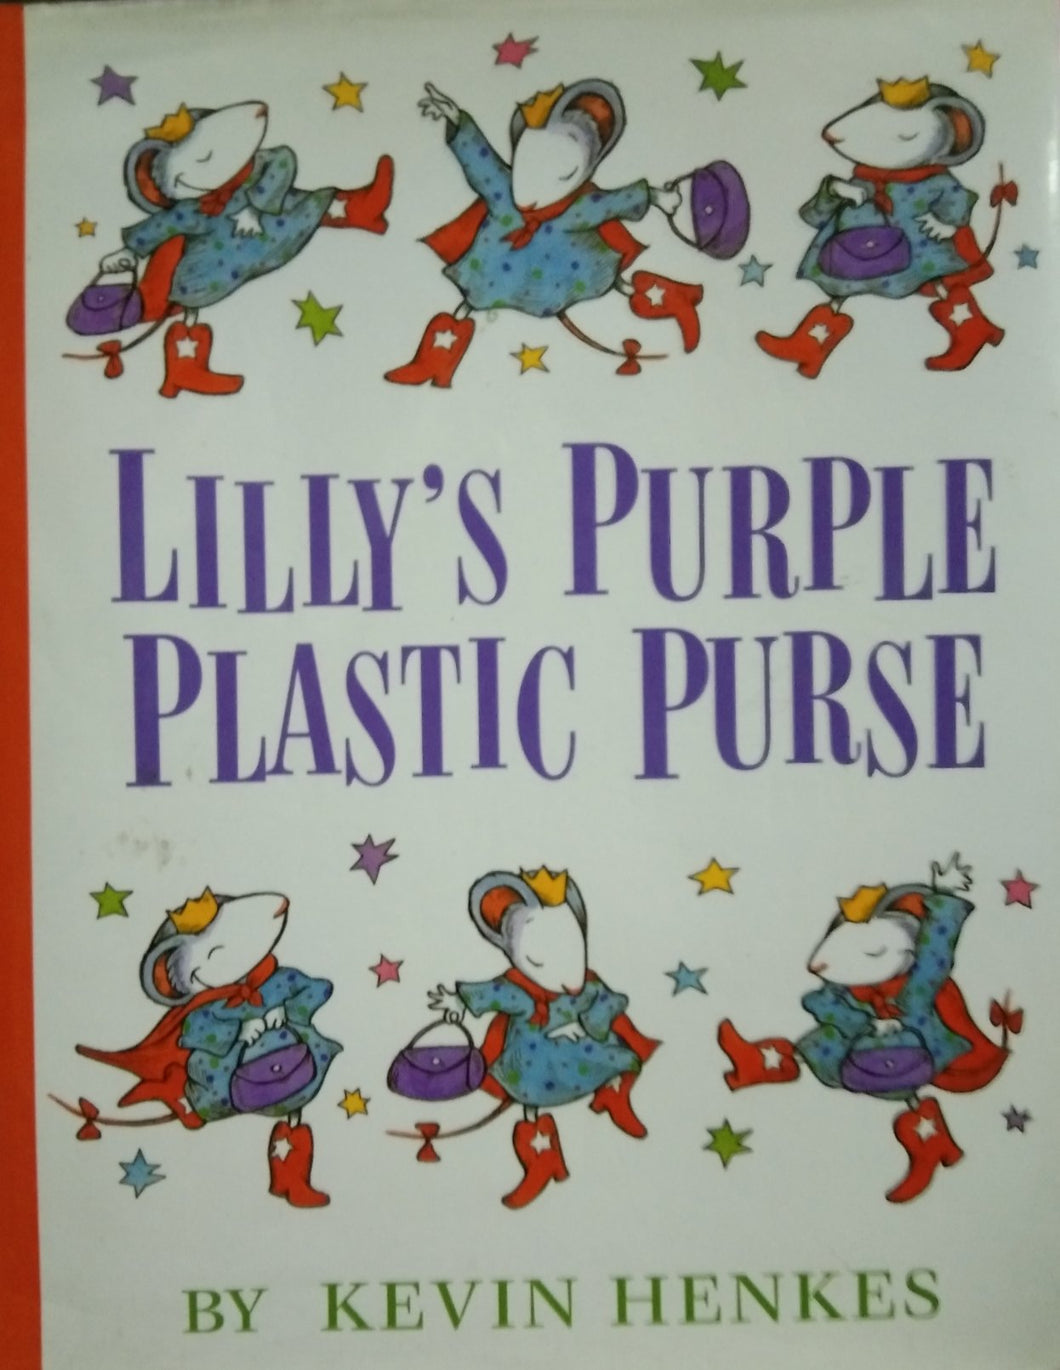 Lily's purple plastic purse by kevin henkes